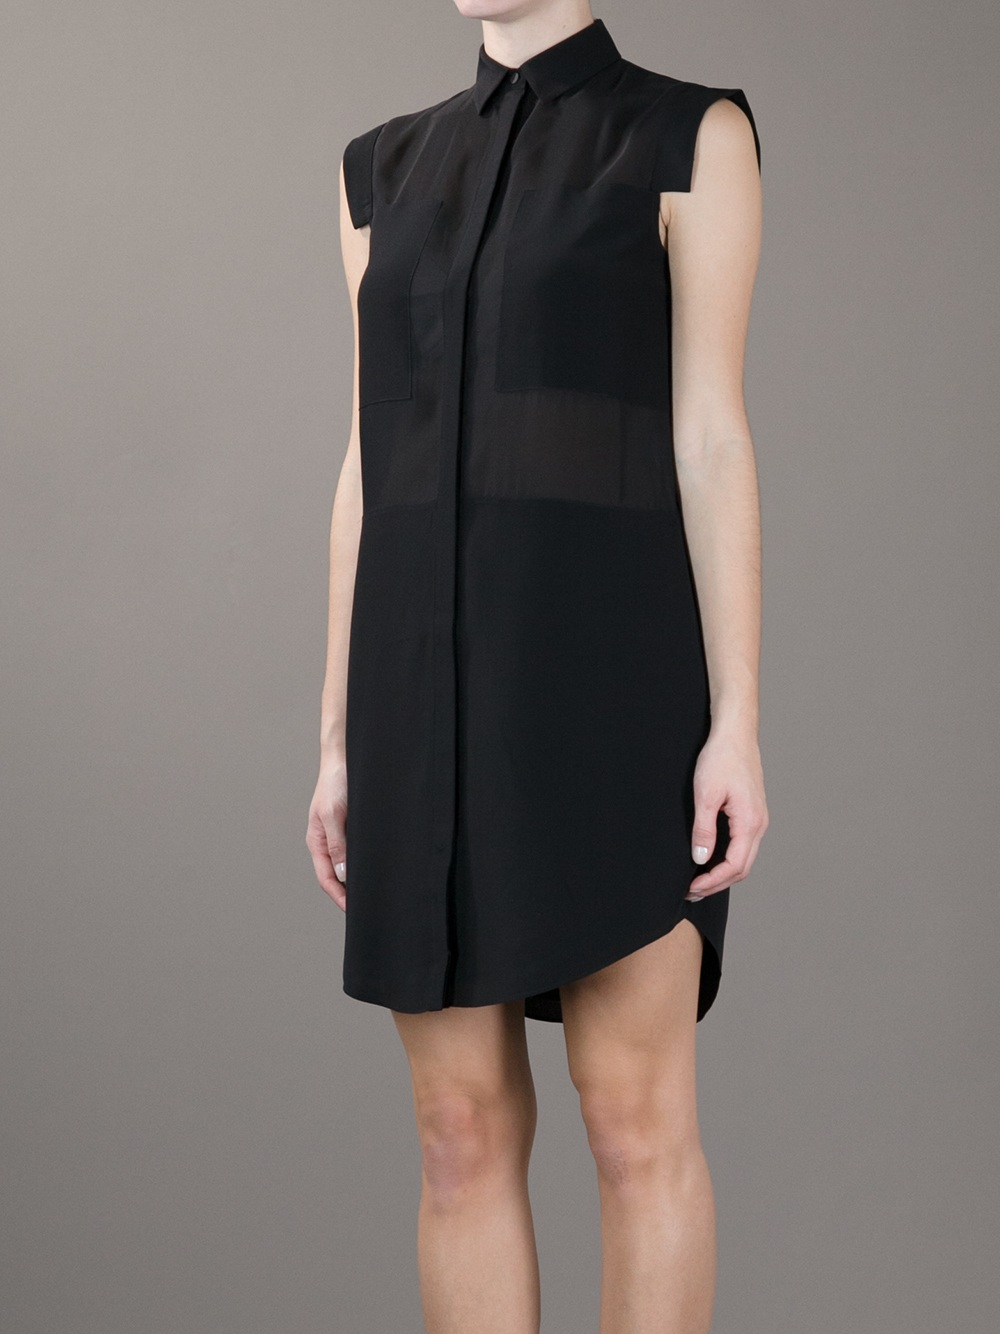 Lyst T By Alexander Wang Paneled Shirt Dress In Black